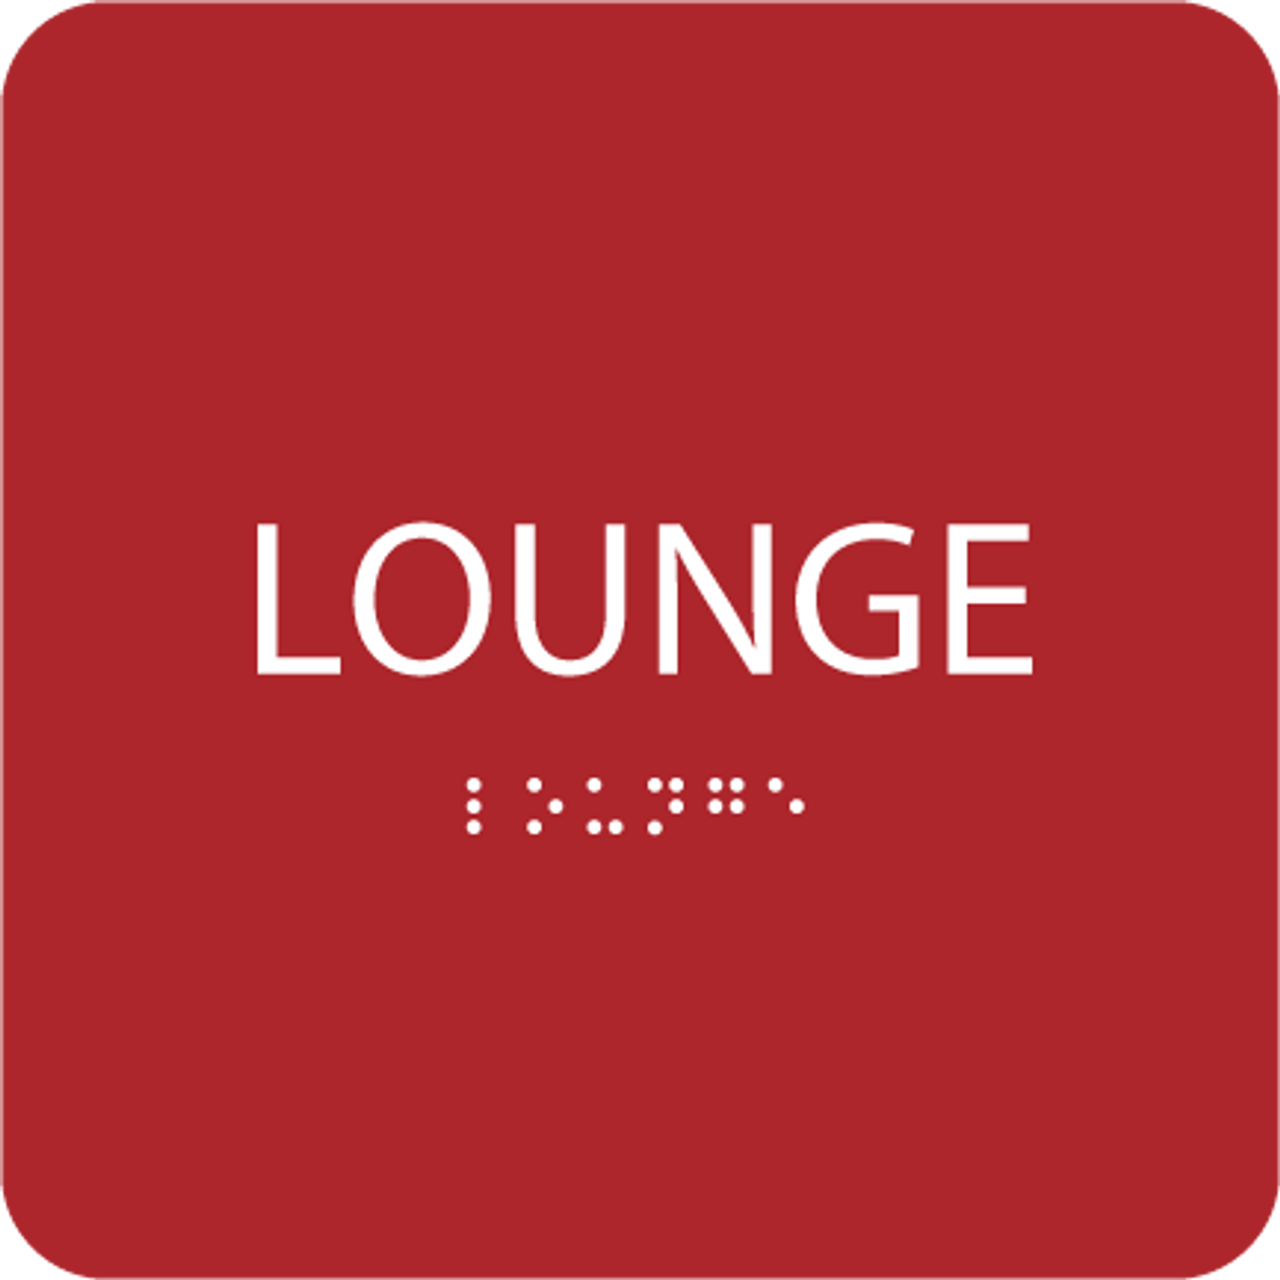 Red Lounge ADA Sign